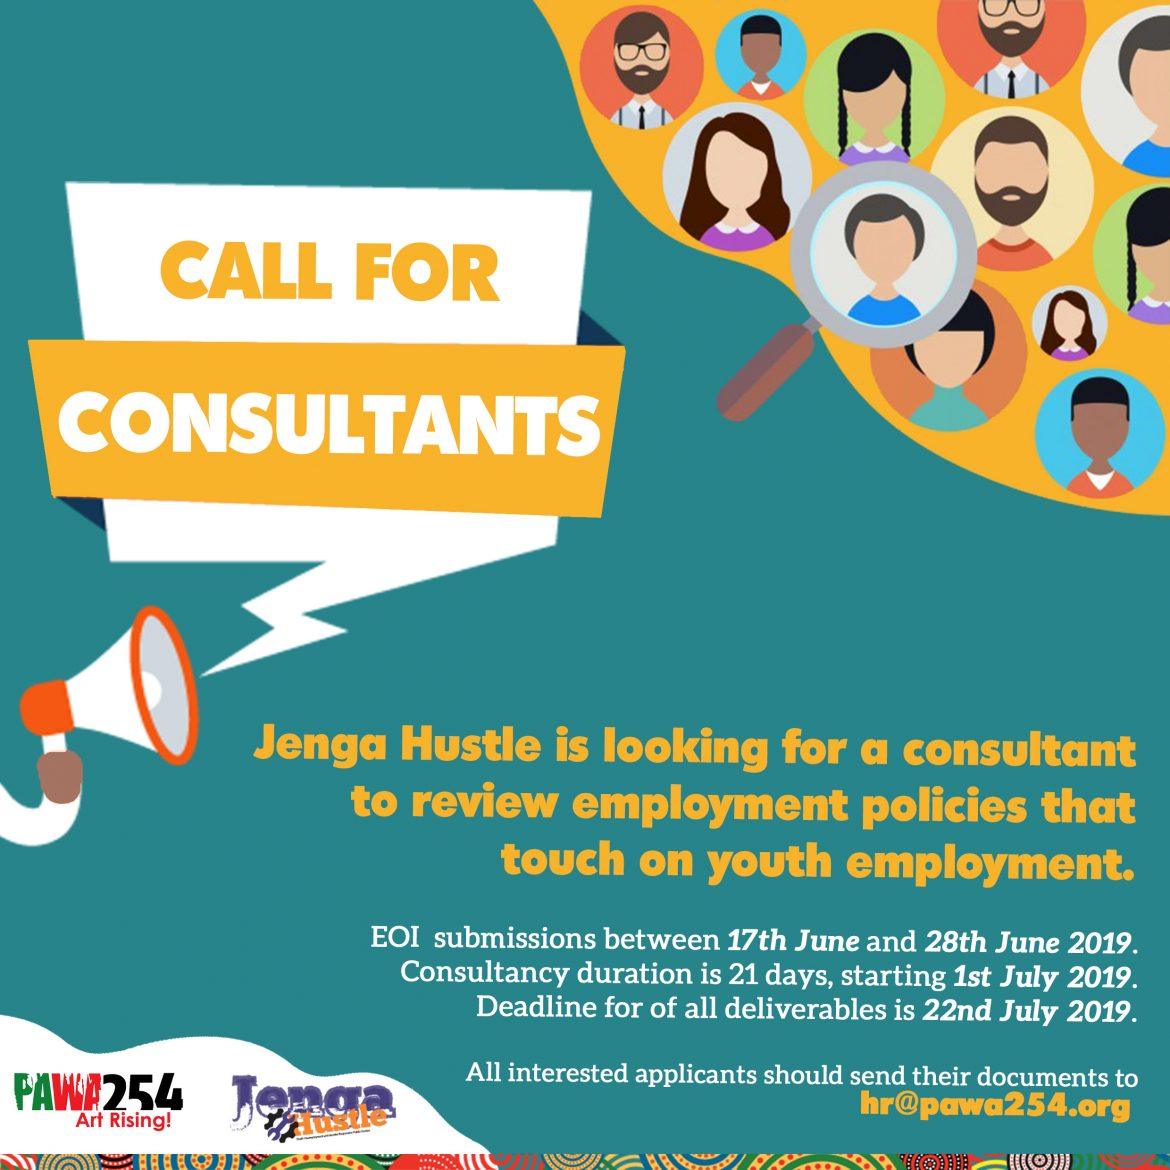 Call for consultants for review of youth employment policies